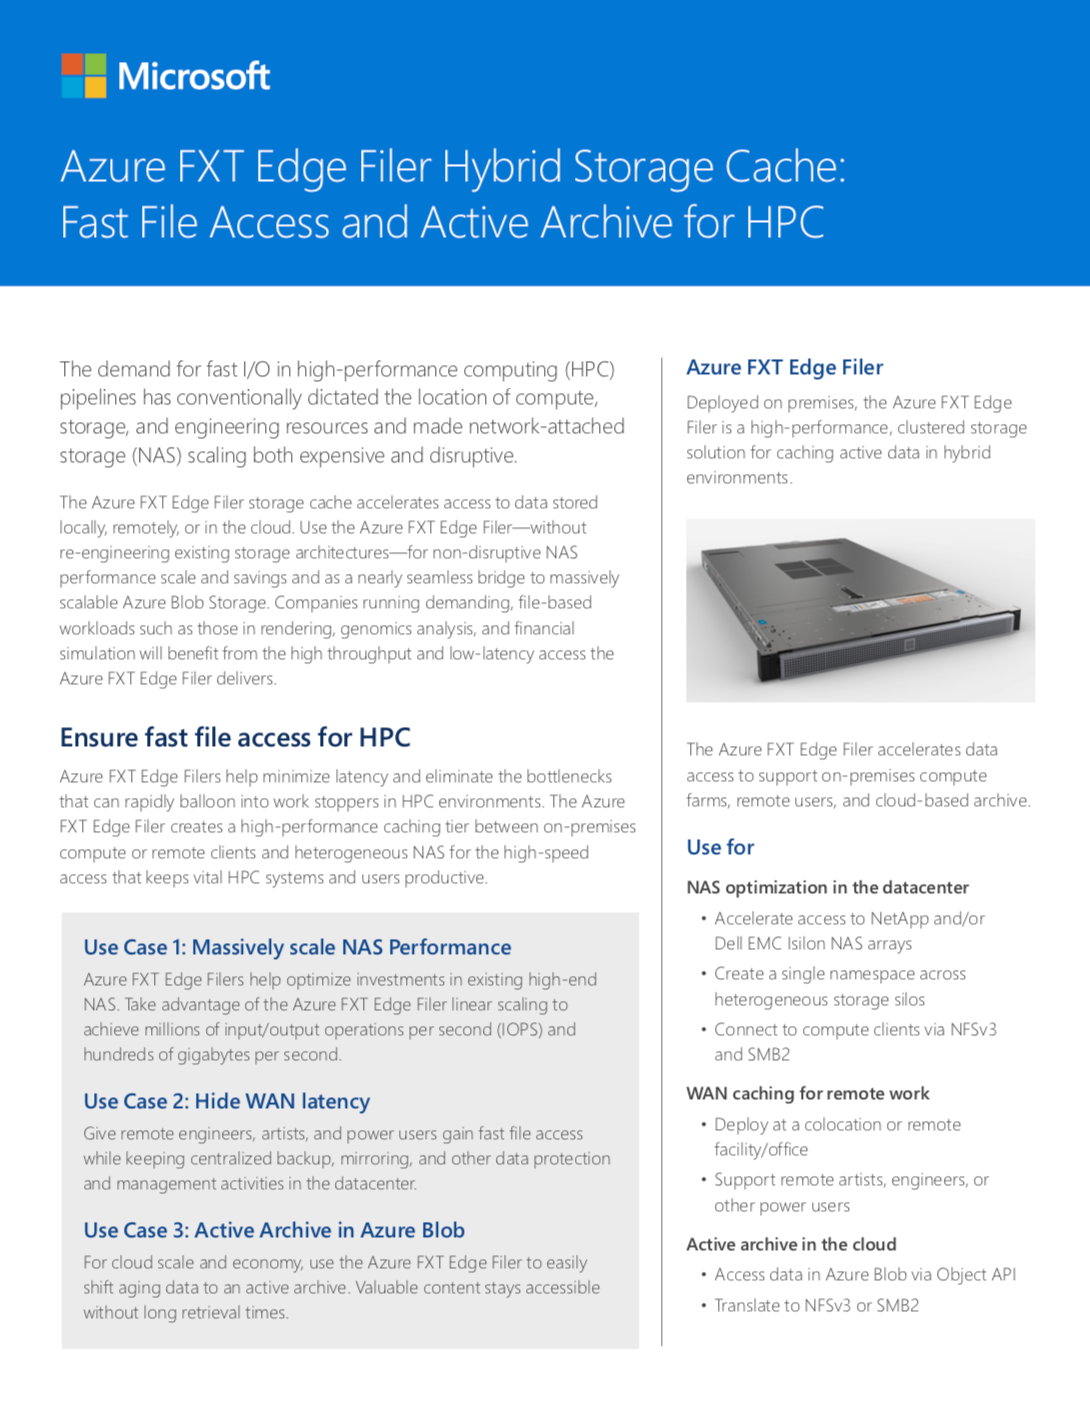 Azure FXT Edge Filer Hybrid Storage Cache: Fast File Access and Active Archive for HPC